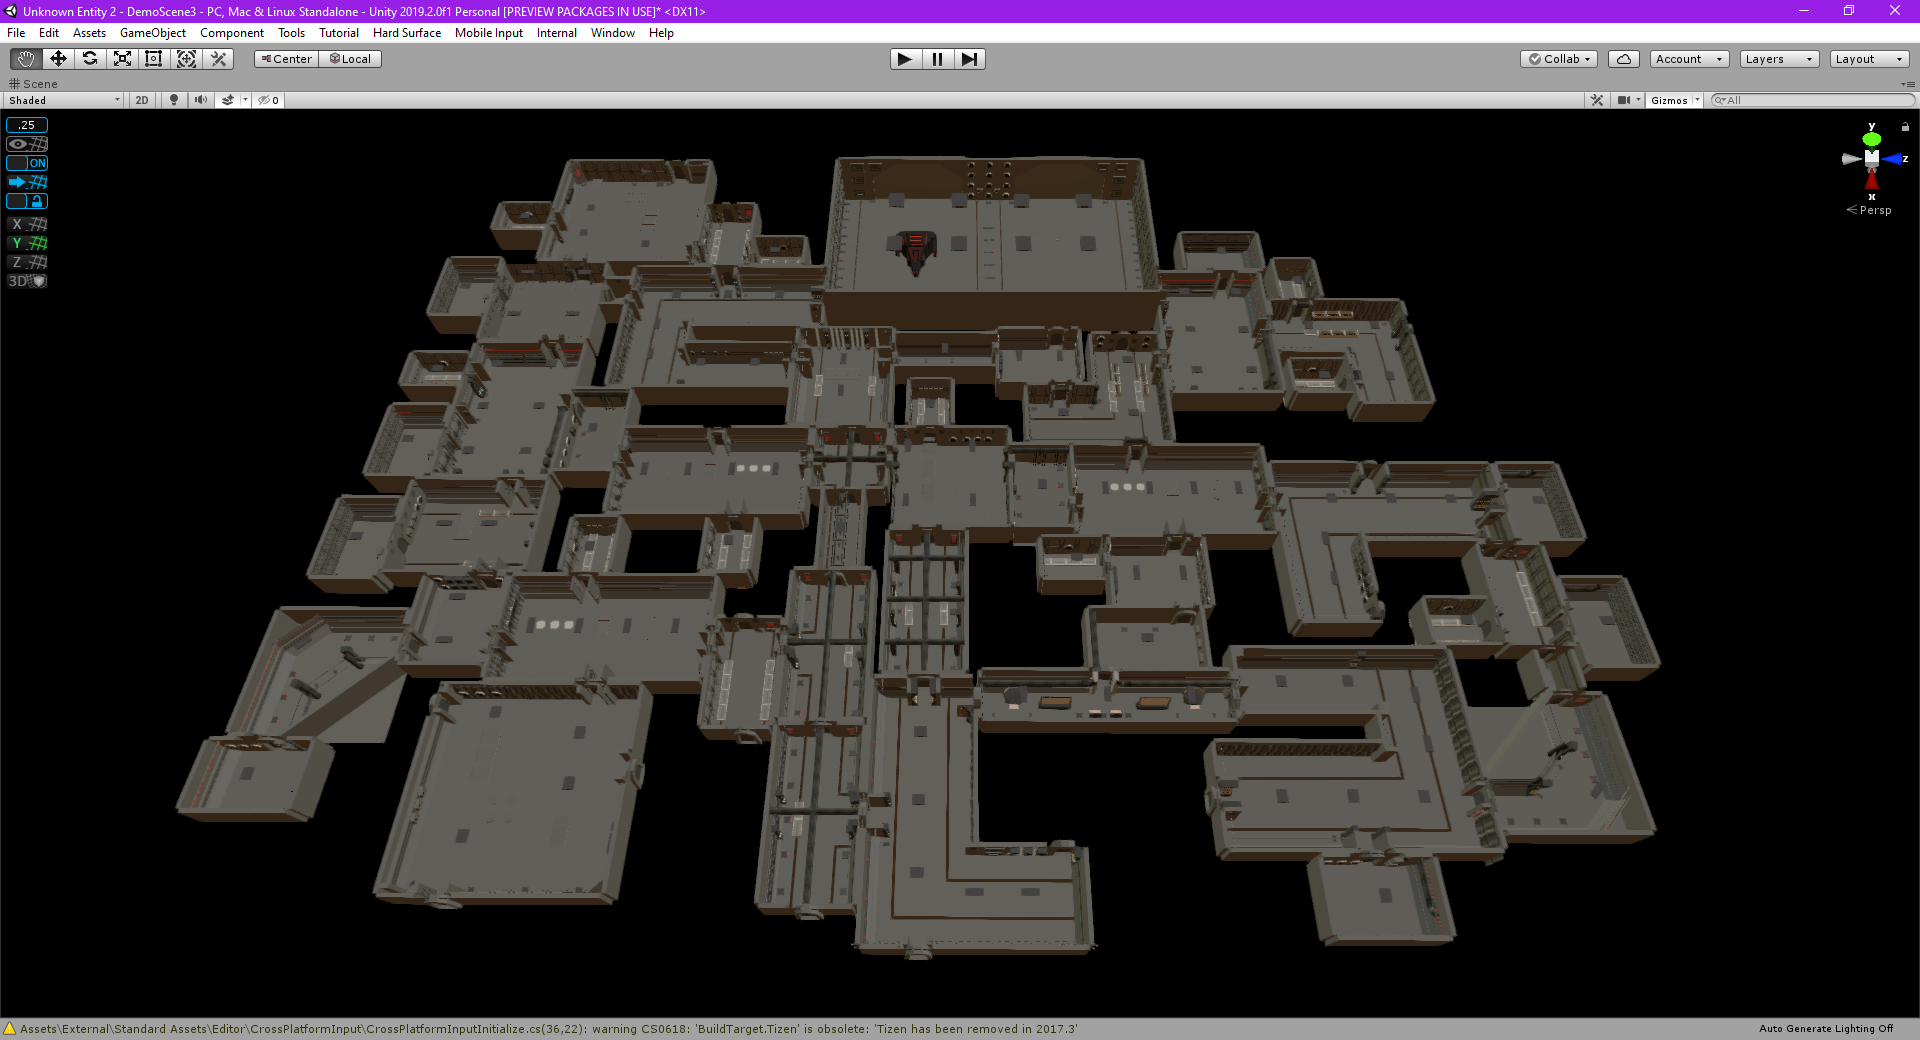 screenshot showing layout of first completed level design